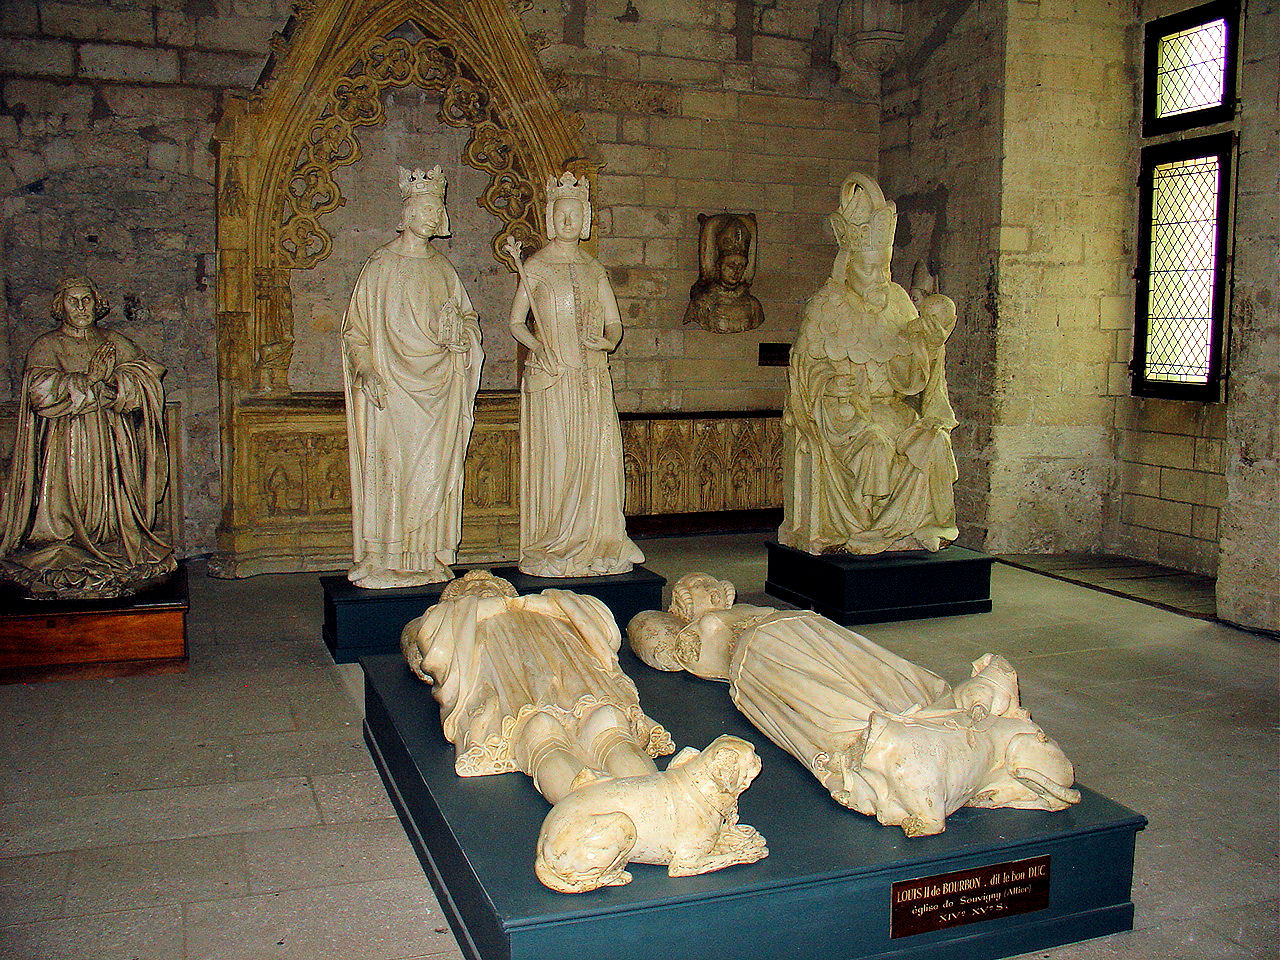 Plaster effigies of prominent figures during the papal rule of the palace.